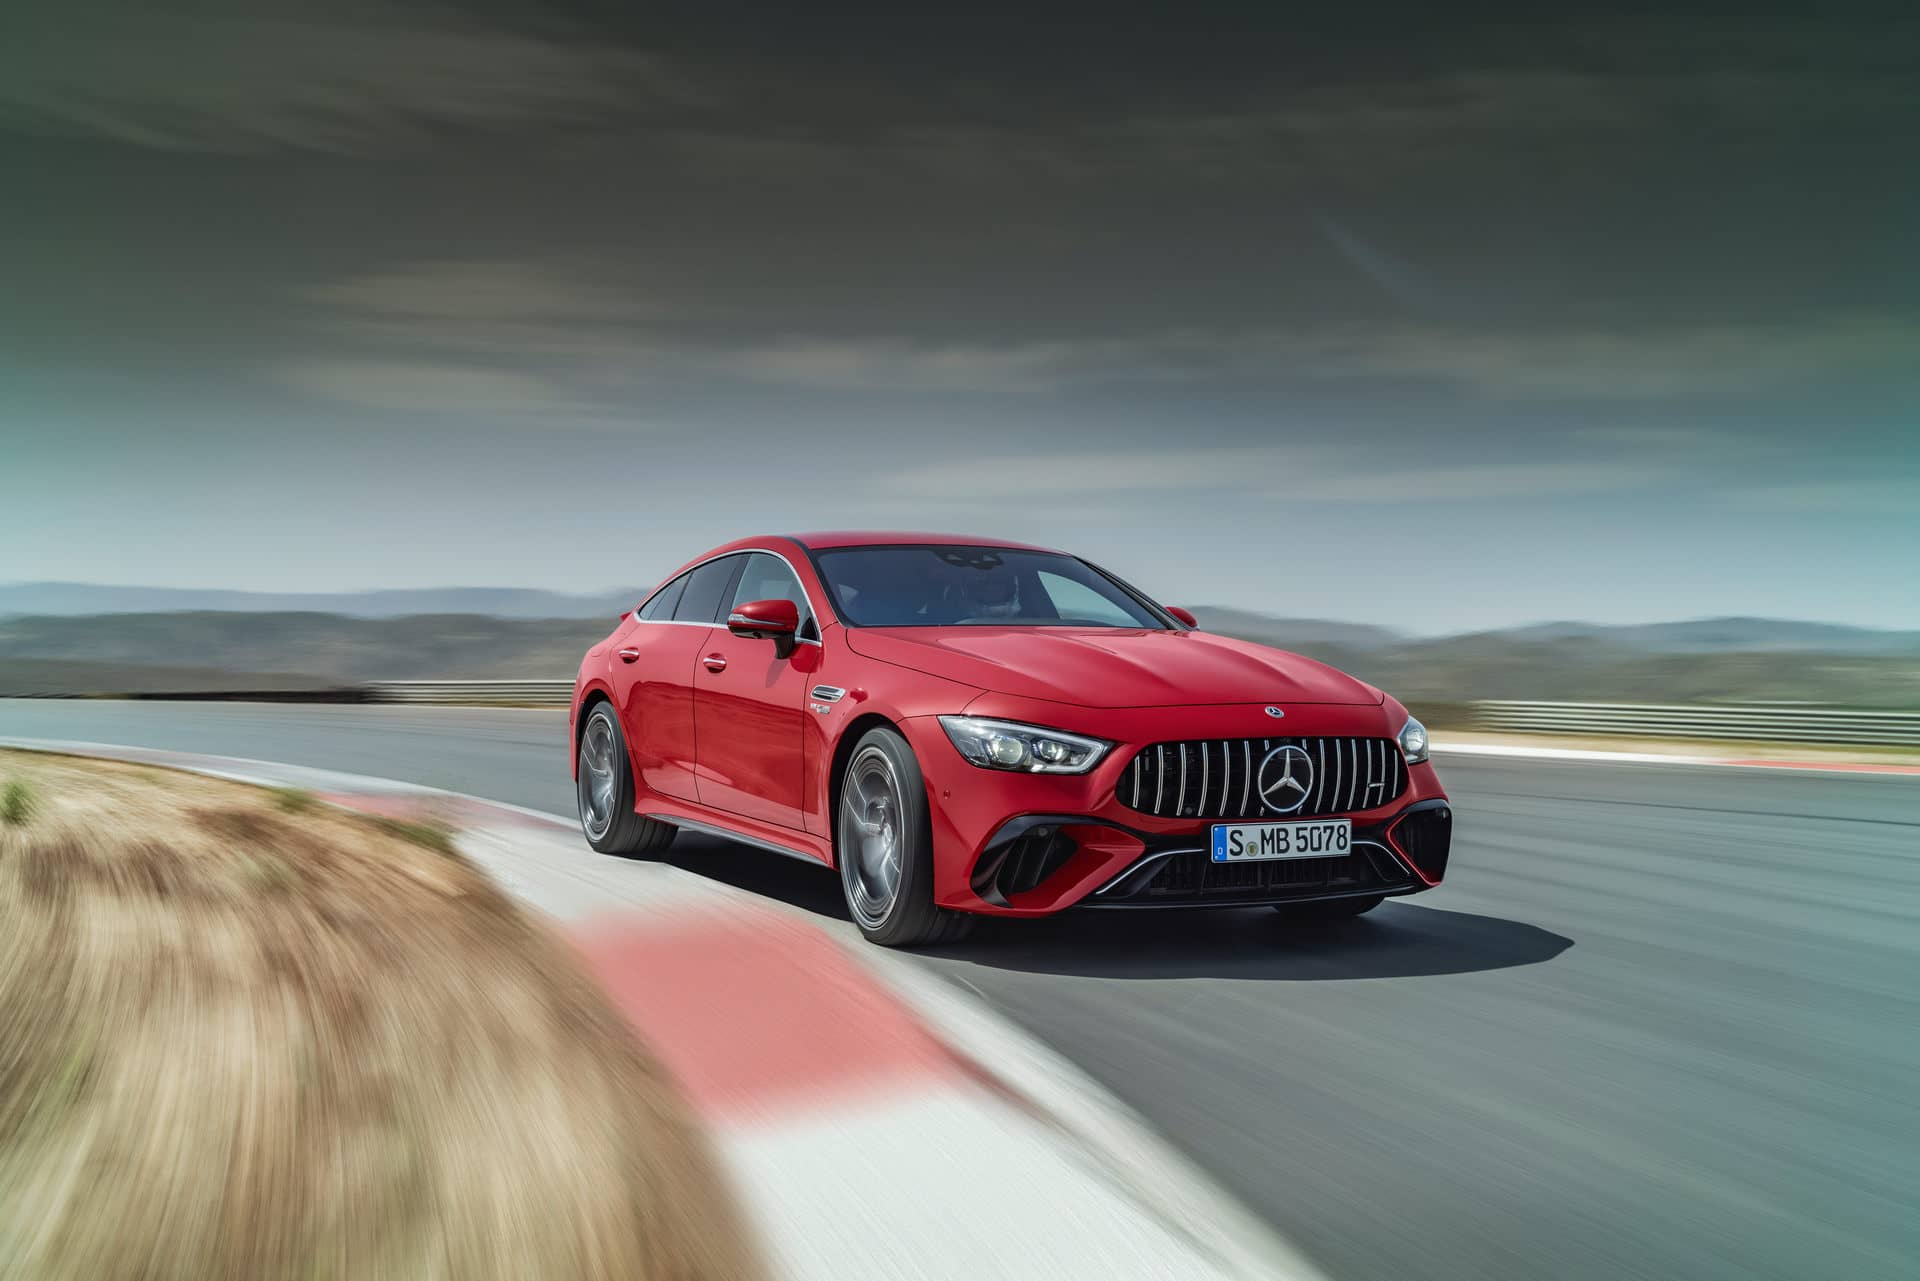 mercedes-amg gt 63 s eperformance (9)